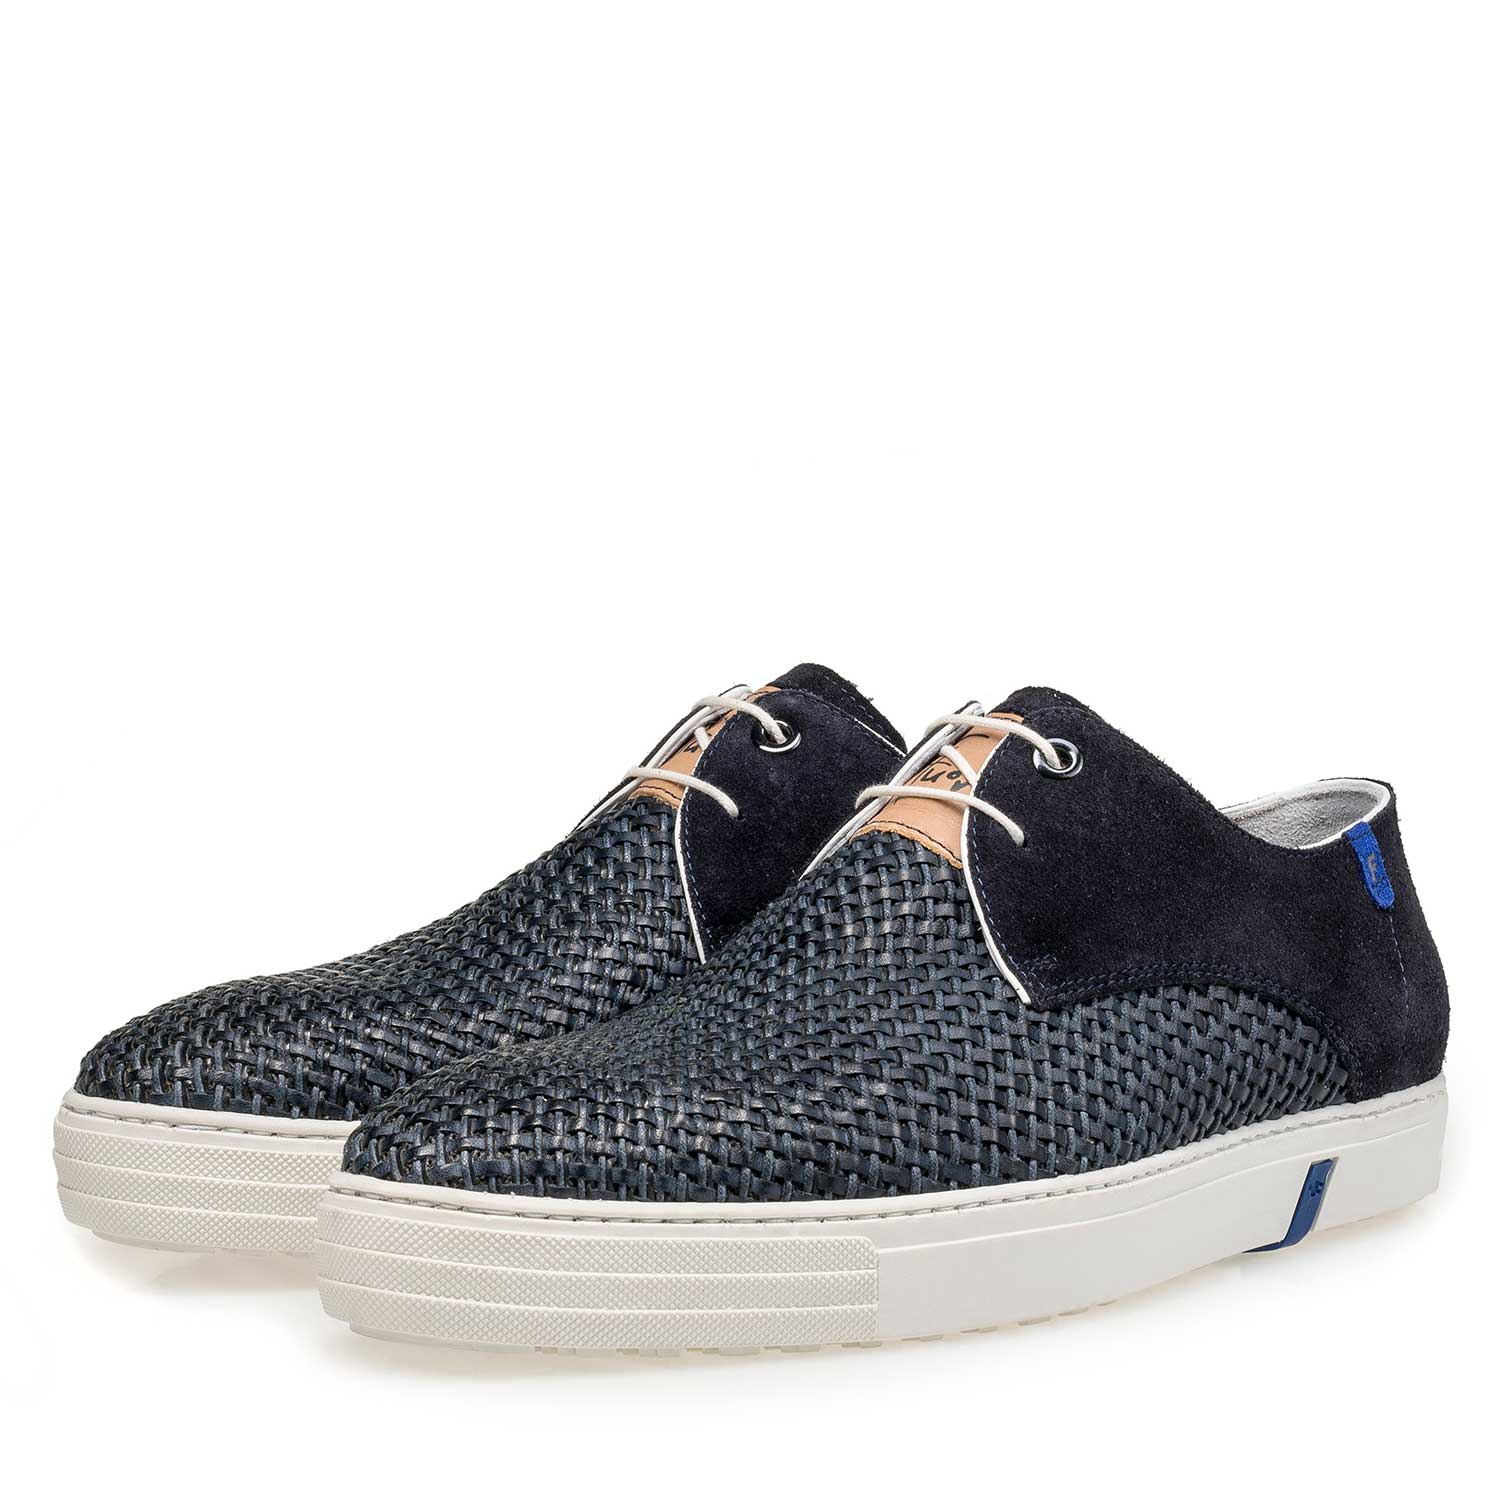 16253/02 - Blue craided calf suede leather lace shoe